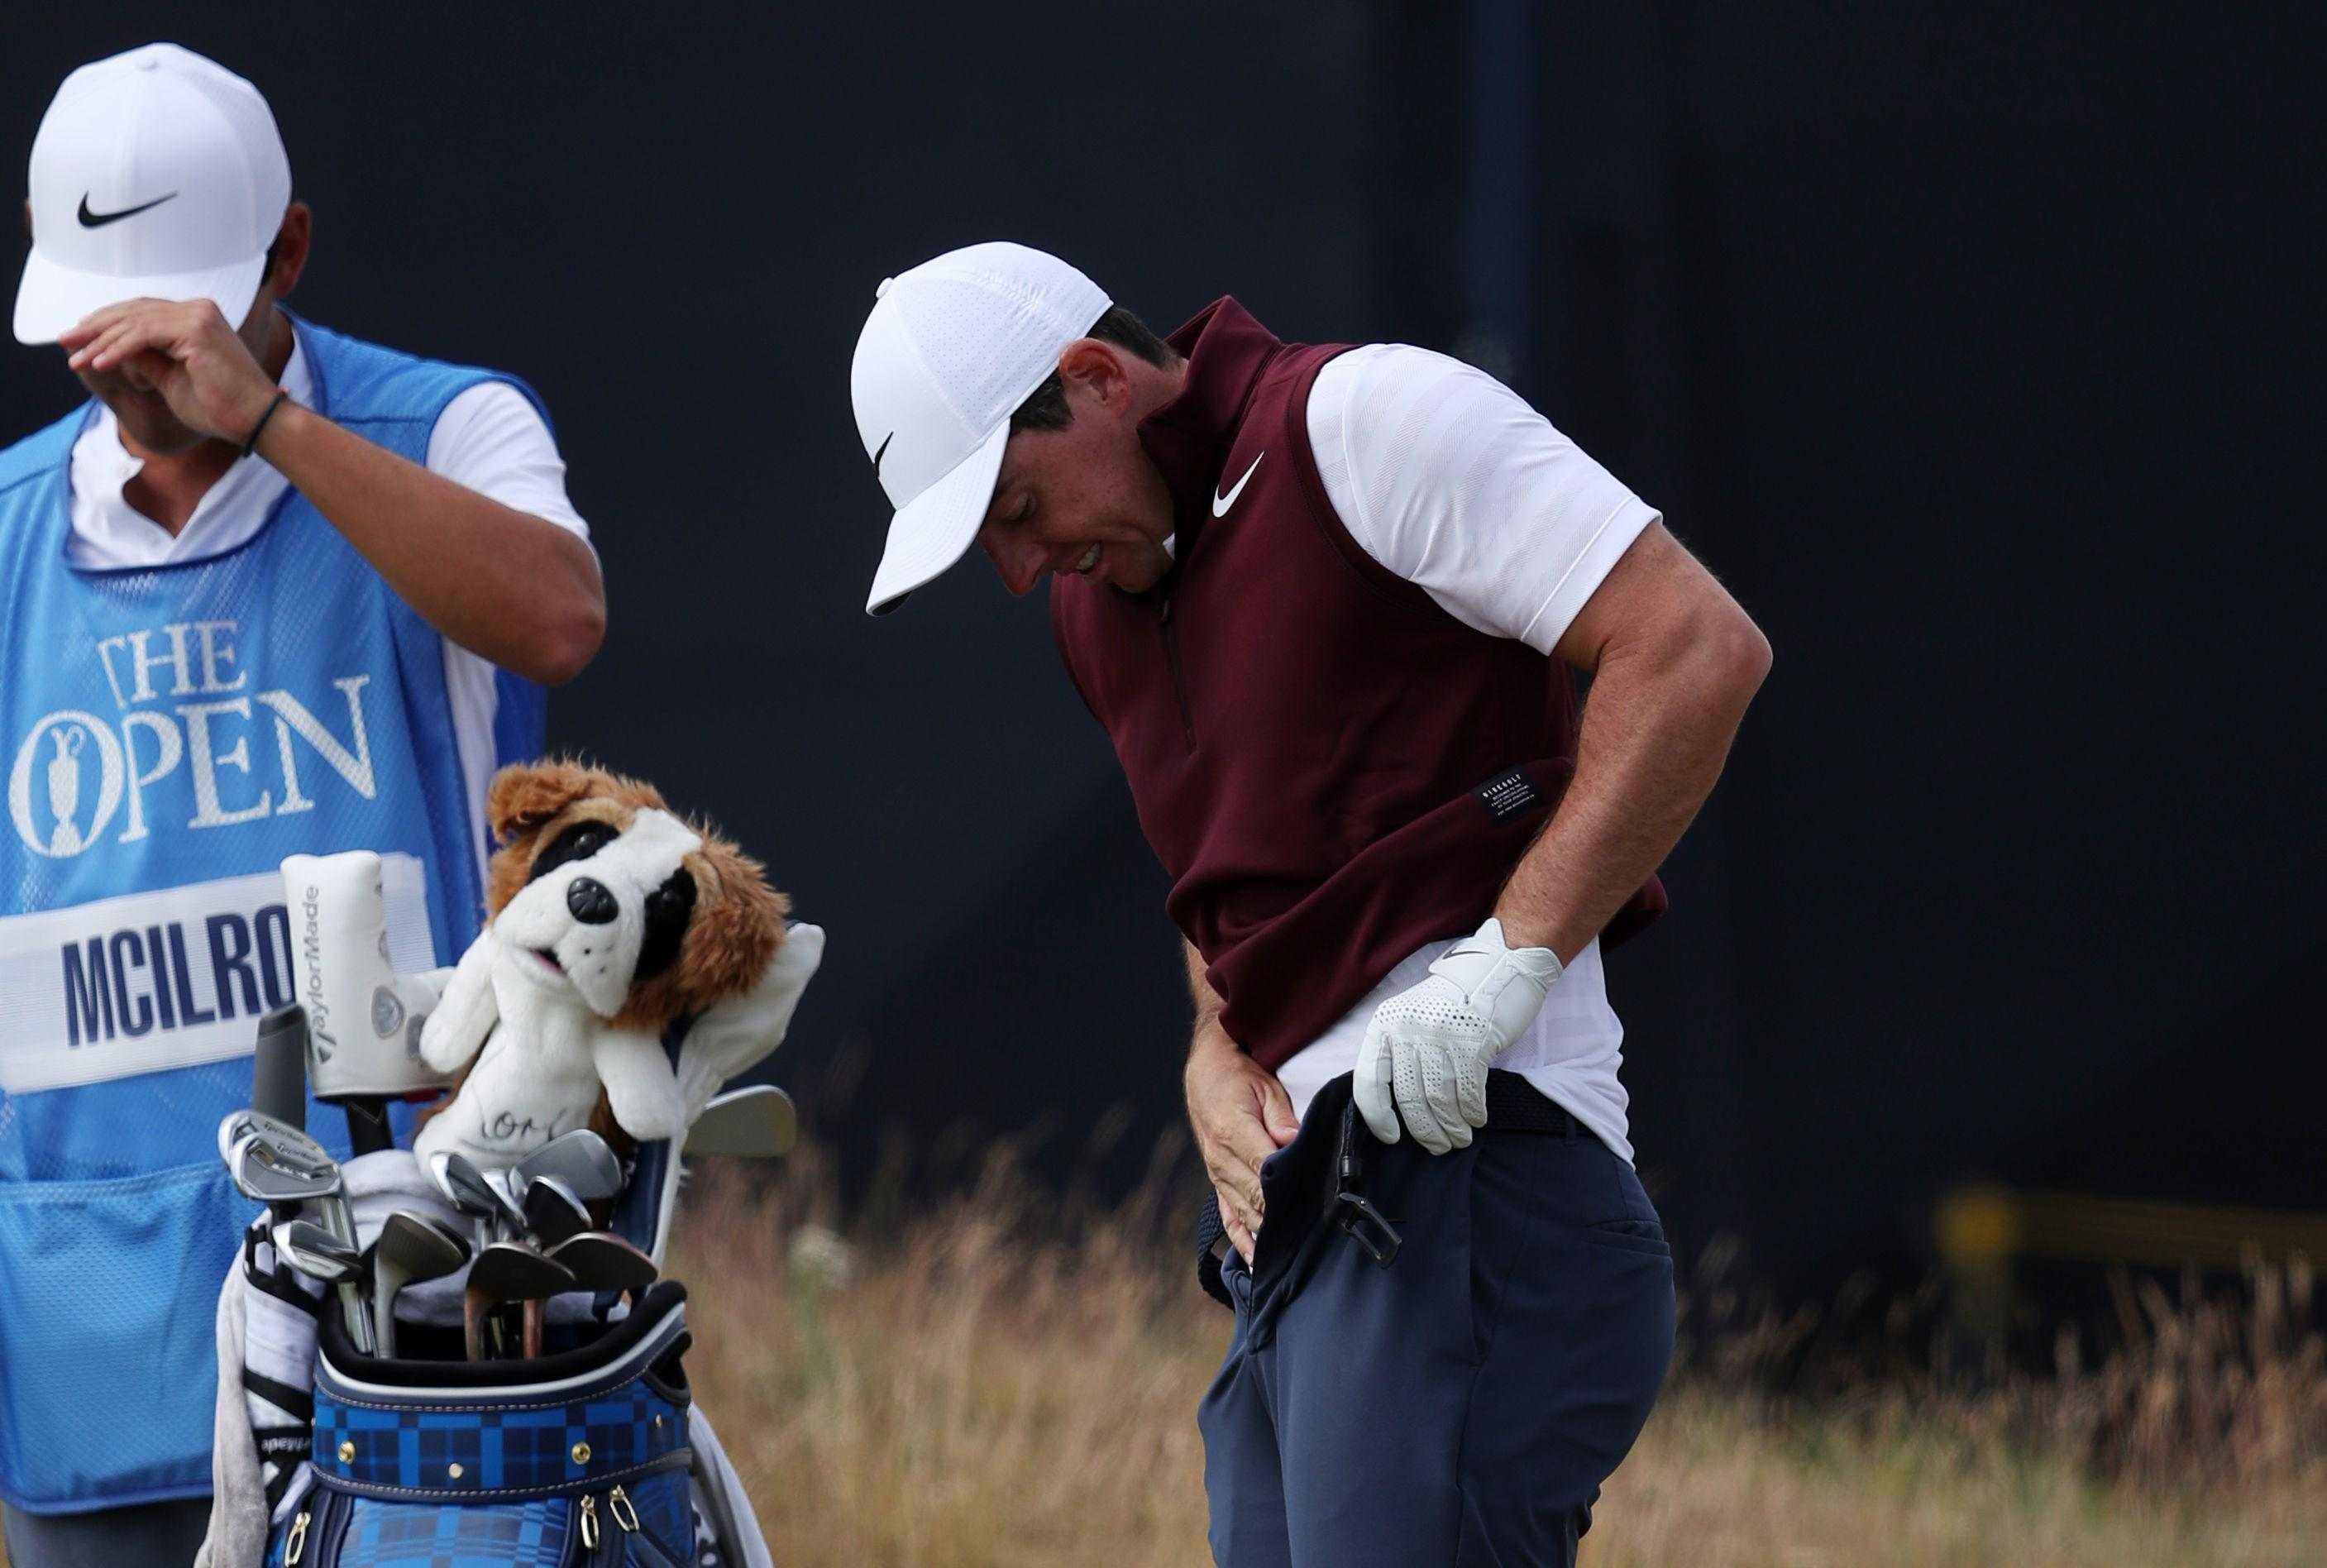 But Rory McIlroy shouldn't have worried that his shot was horrifically wide - in fact a rival player had sneaked off with his ball